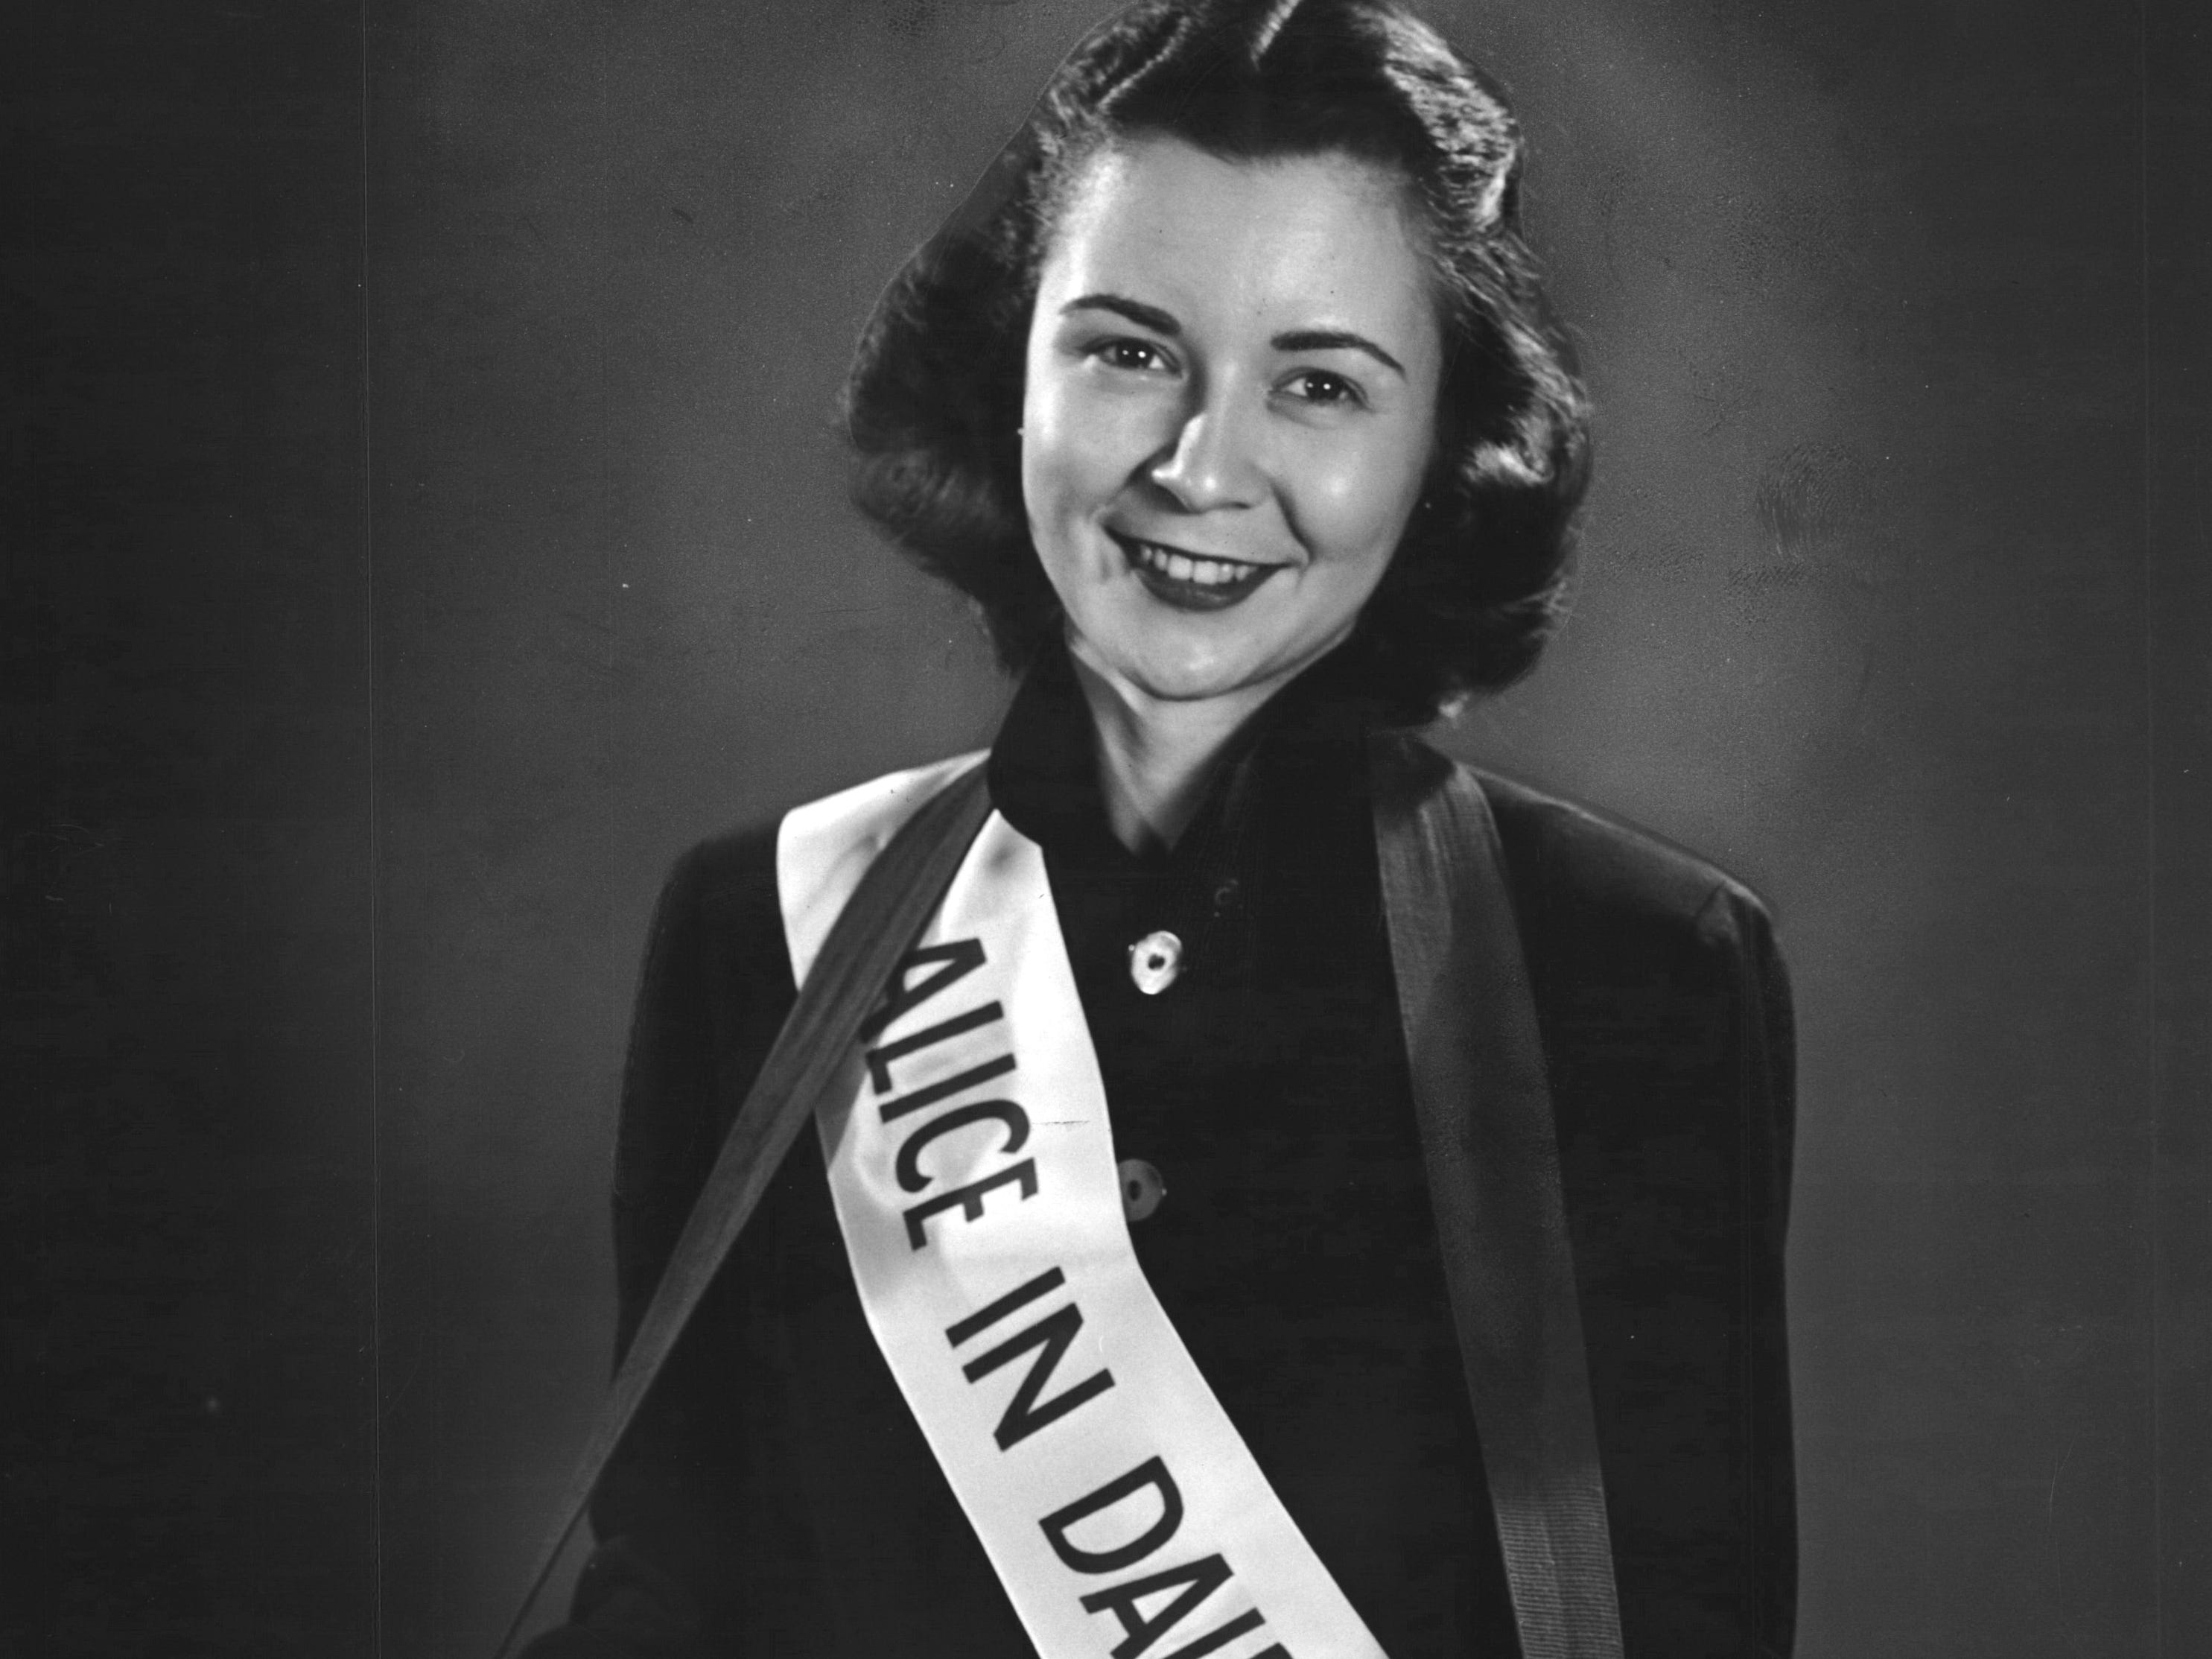 1948: After WWII, the Milk Marketing Board created the Alice in Dairyland spokesperson to promote its products across the country. Miss Margaret McGuire of Highland was the first to hold the position.